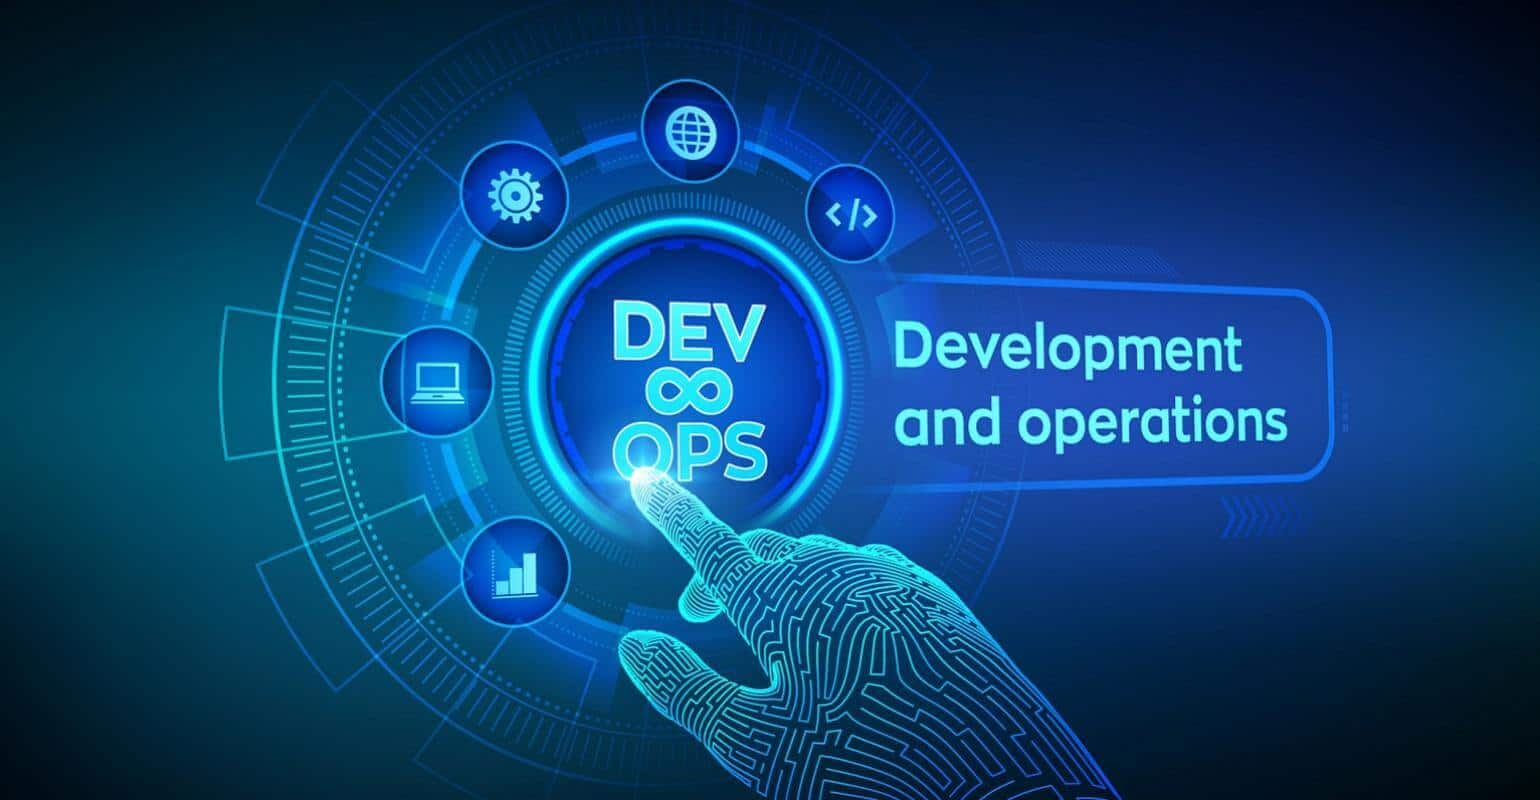 Become a Well-Versed IT Systems & Networks Professional with this DevOps Certifications Courses & Practice Tests Bundle